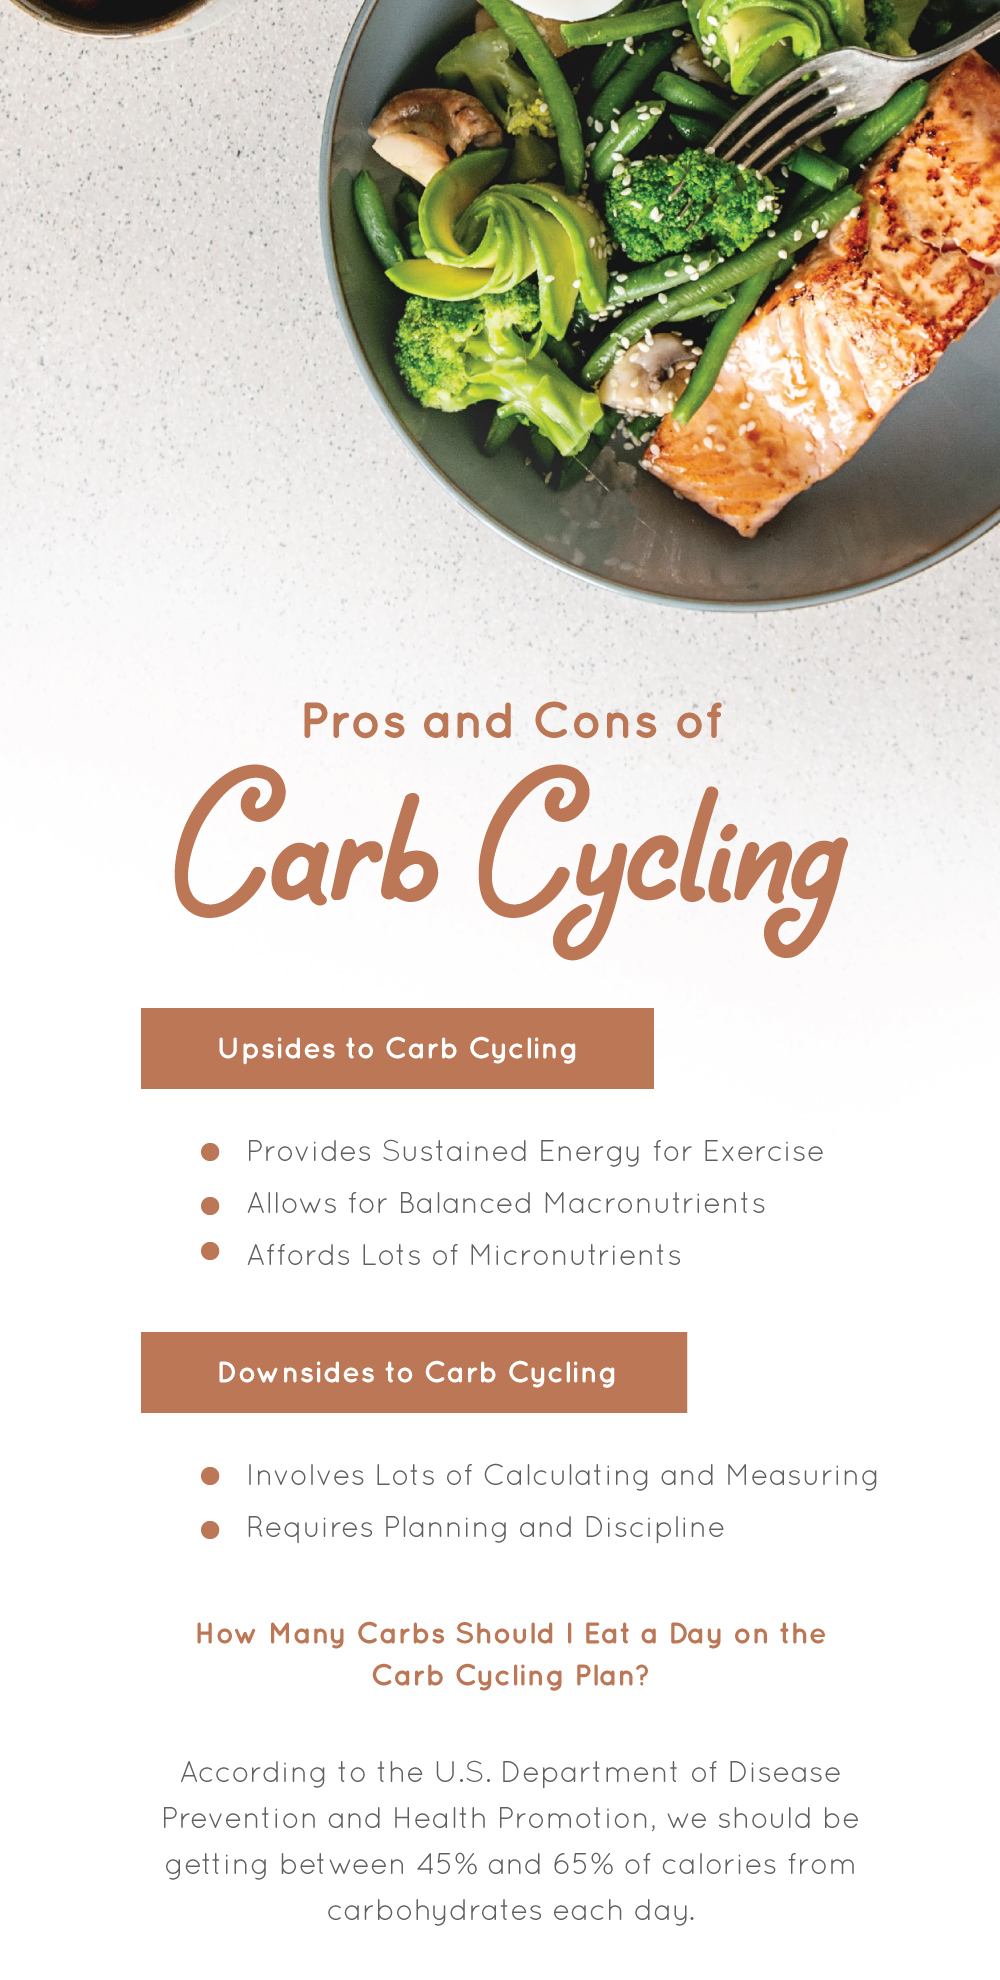 Pros and Cons of Carb Cycling